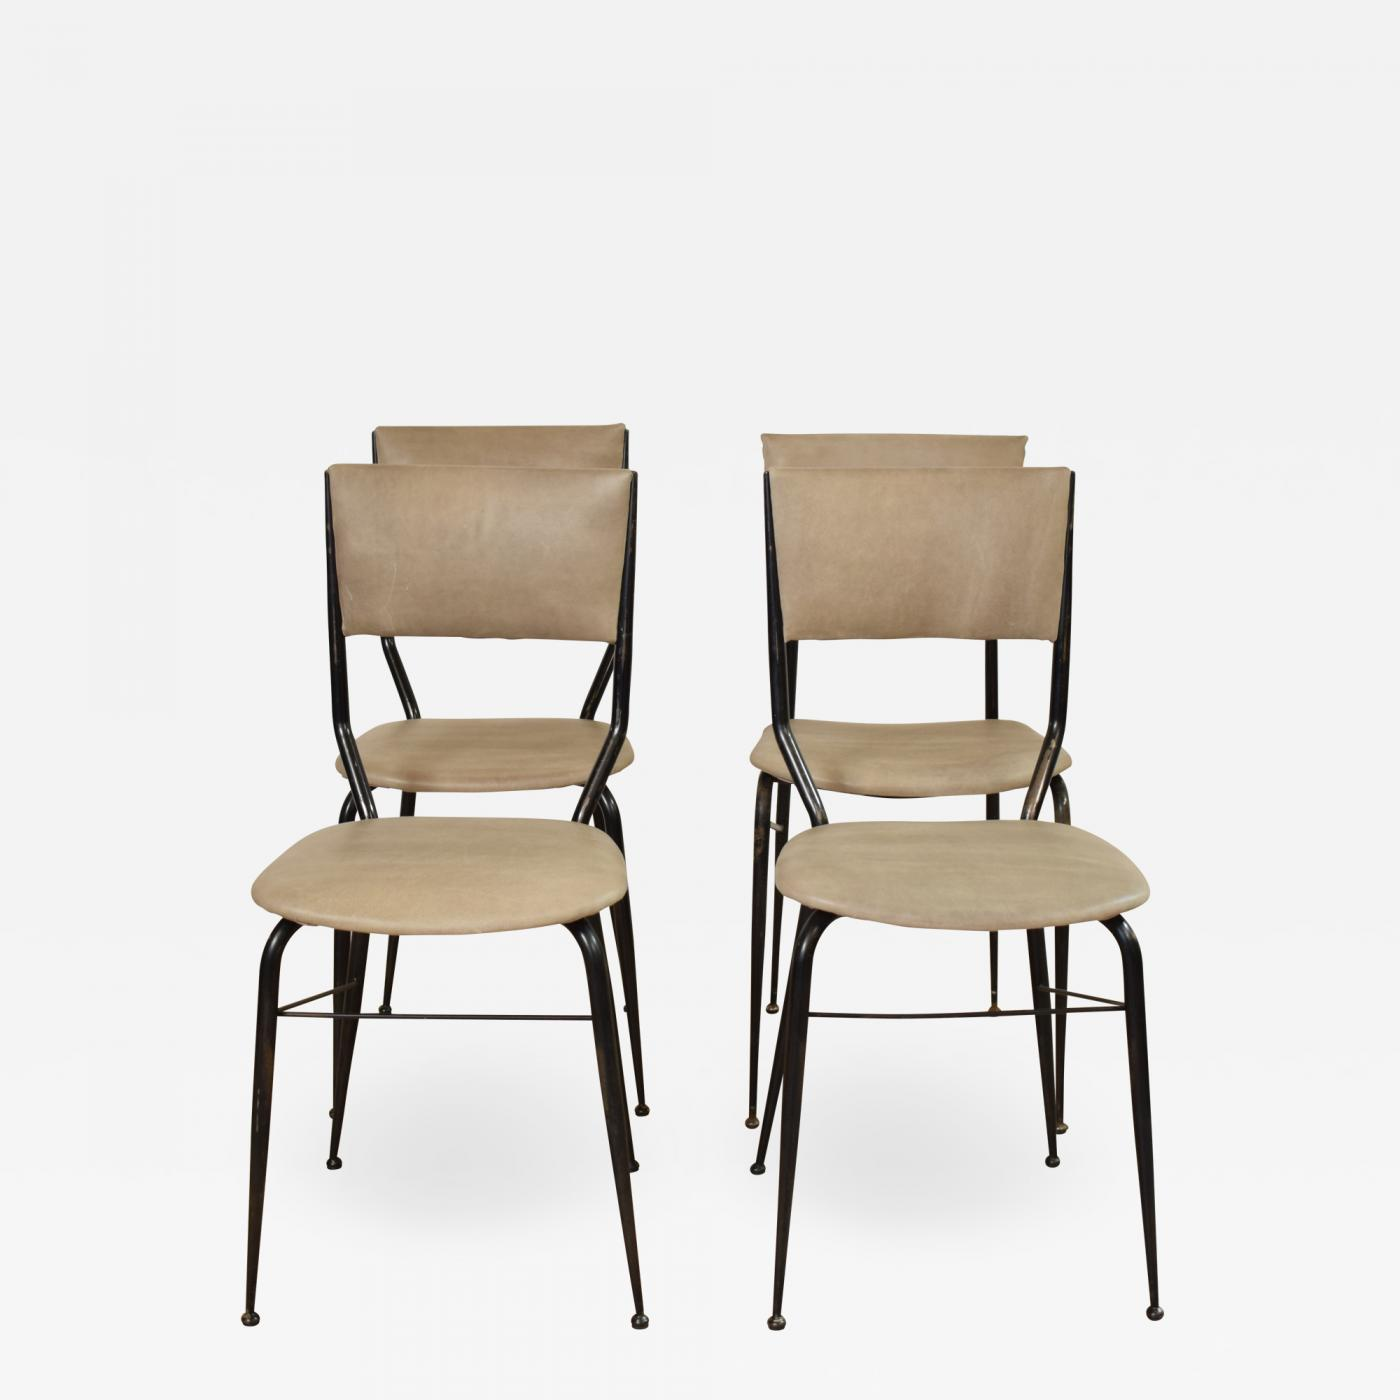 Miraculous Set Of Four Midcentury Italian Metal And Leather Dining Chairs Bralicious Painted Fabric Chair Ideas Braliciousco